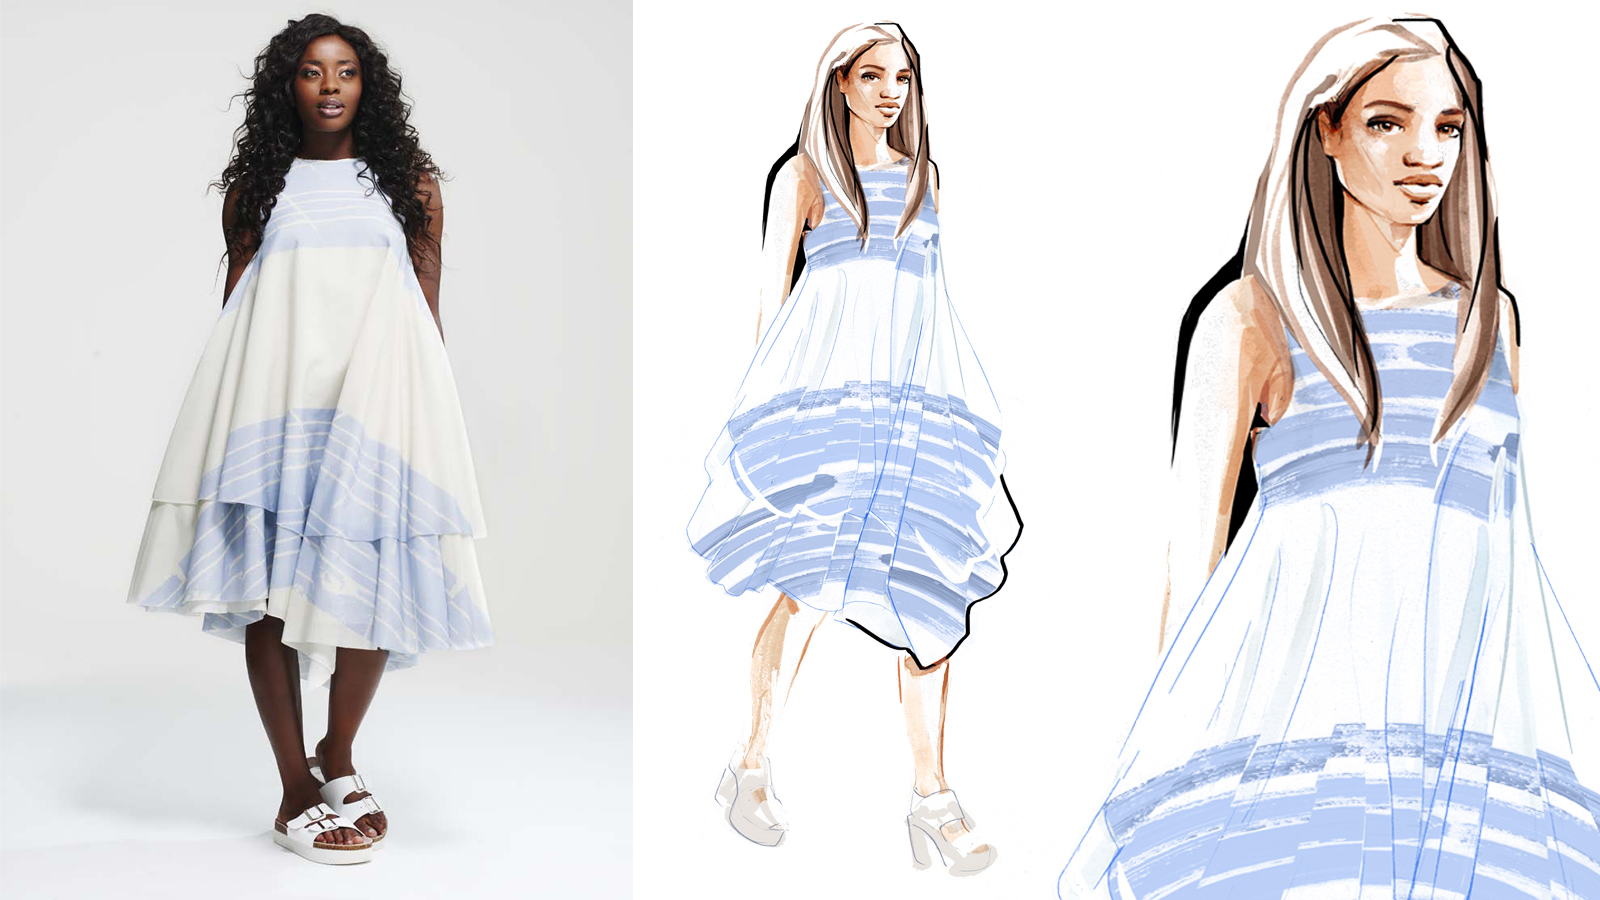 Kelly Shaw - Fashion Illustrations by Willa Gebbie